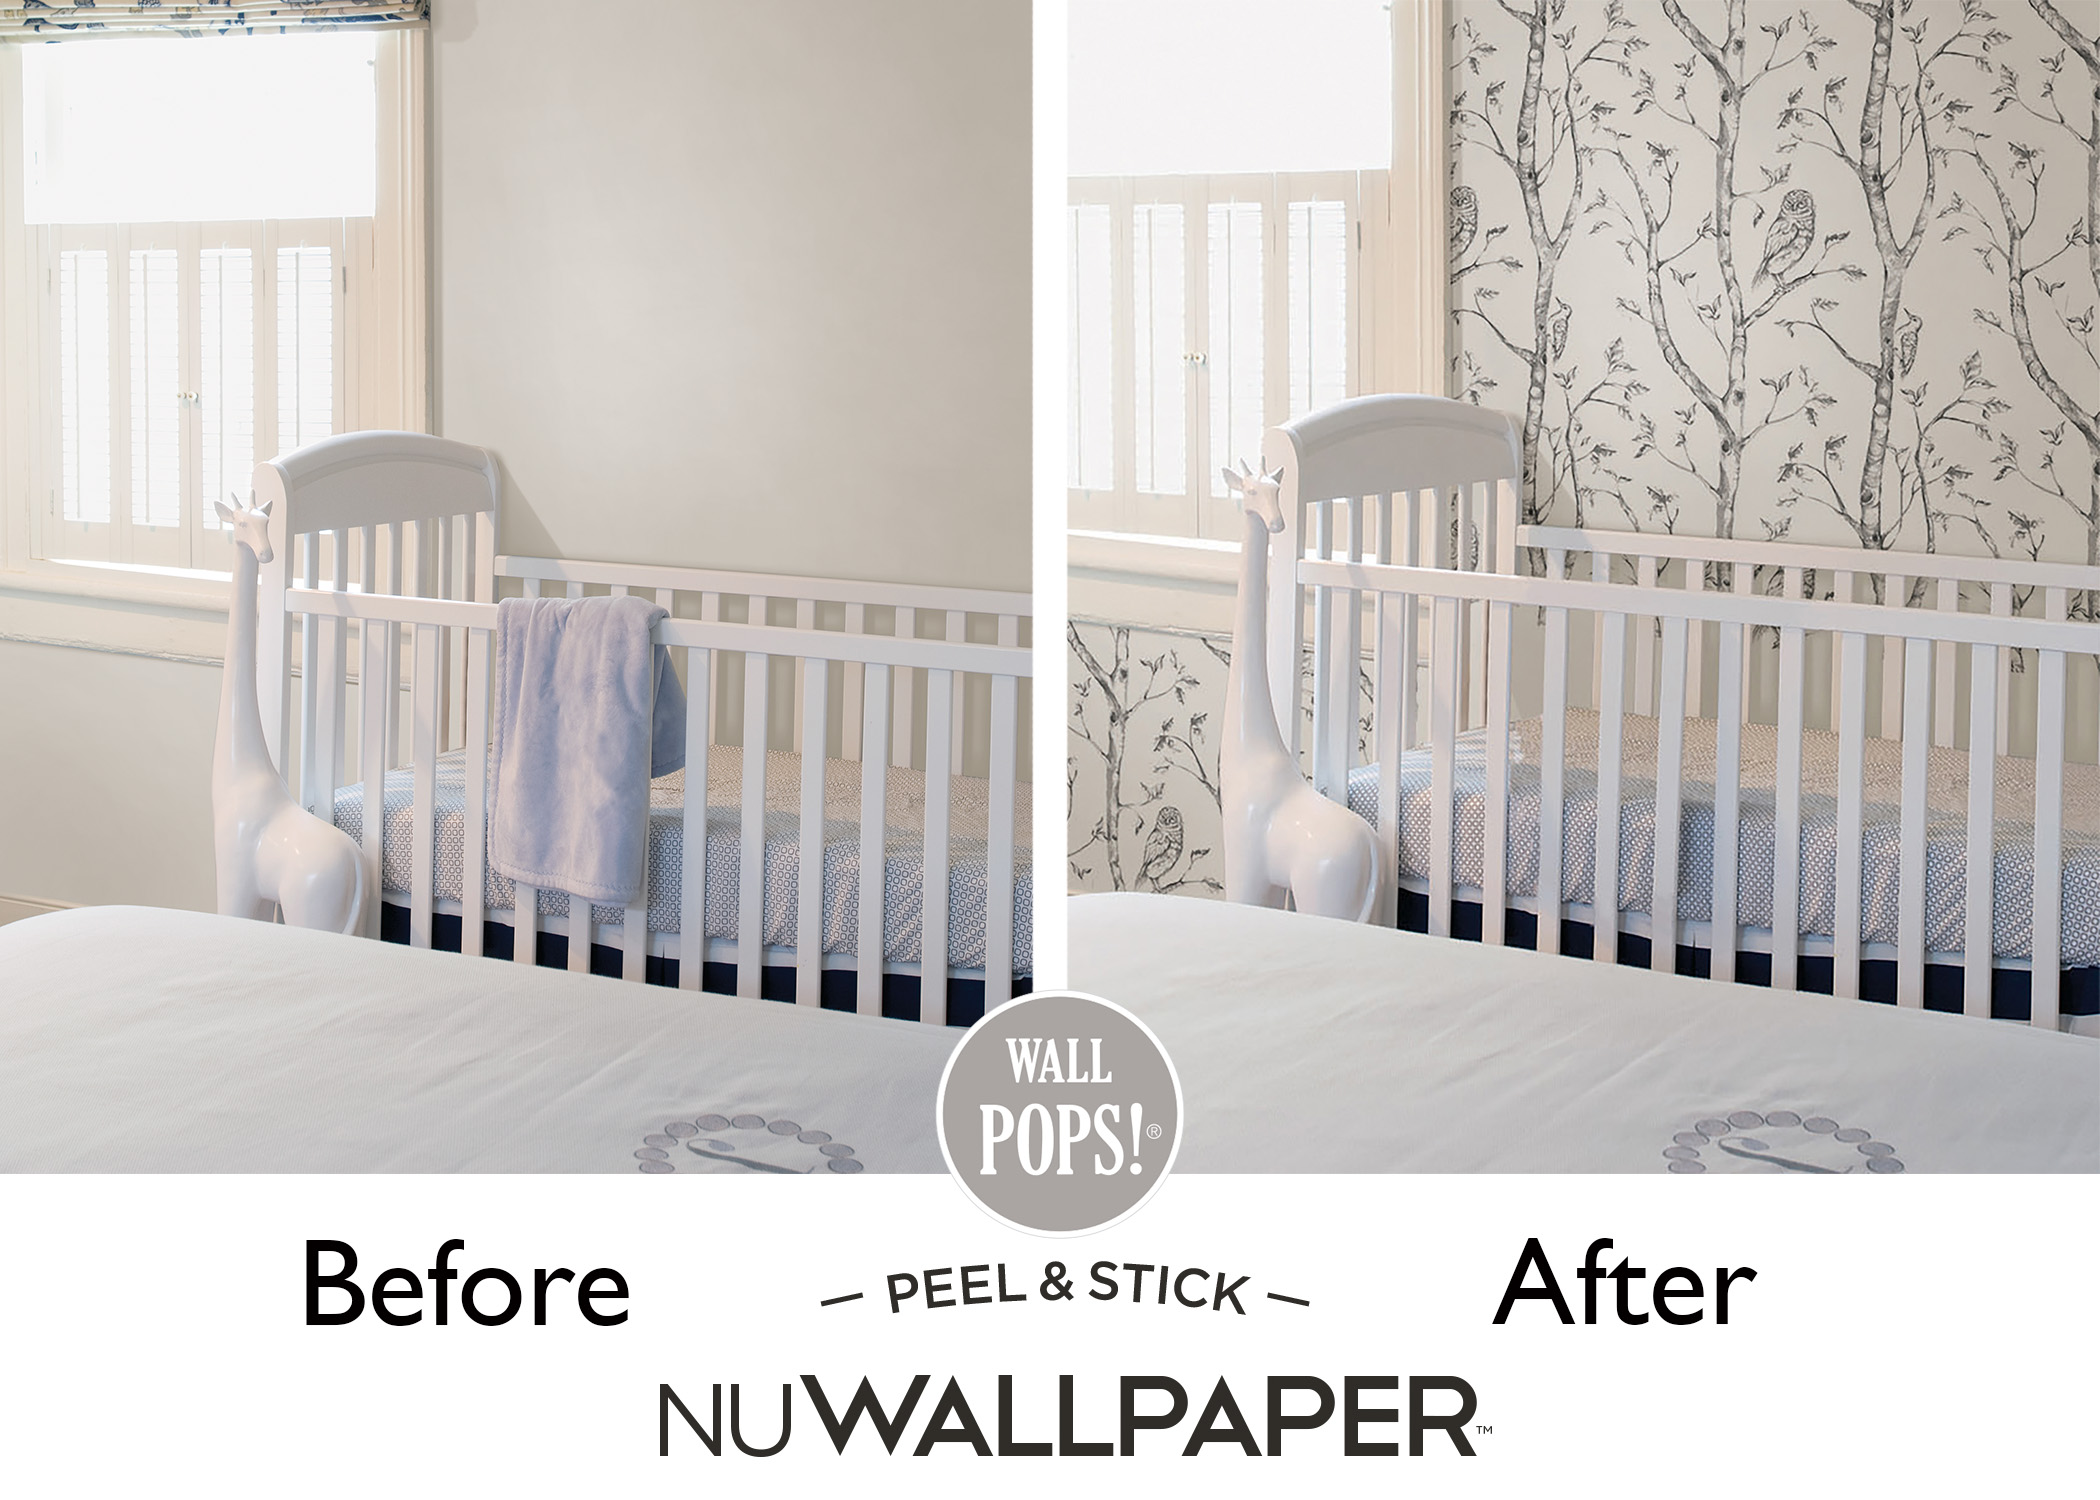 Nursery Owl Wallpaper Before and After